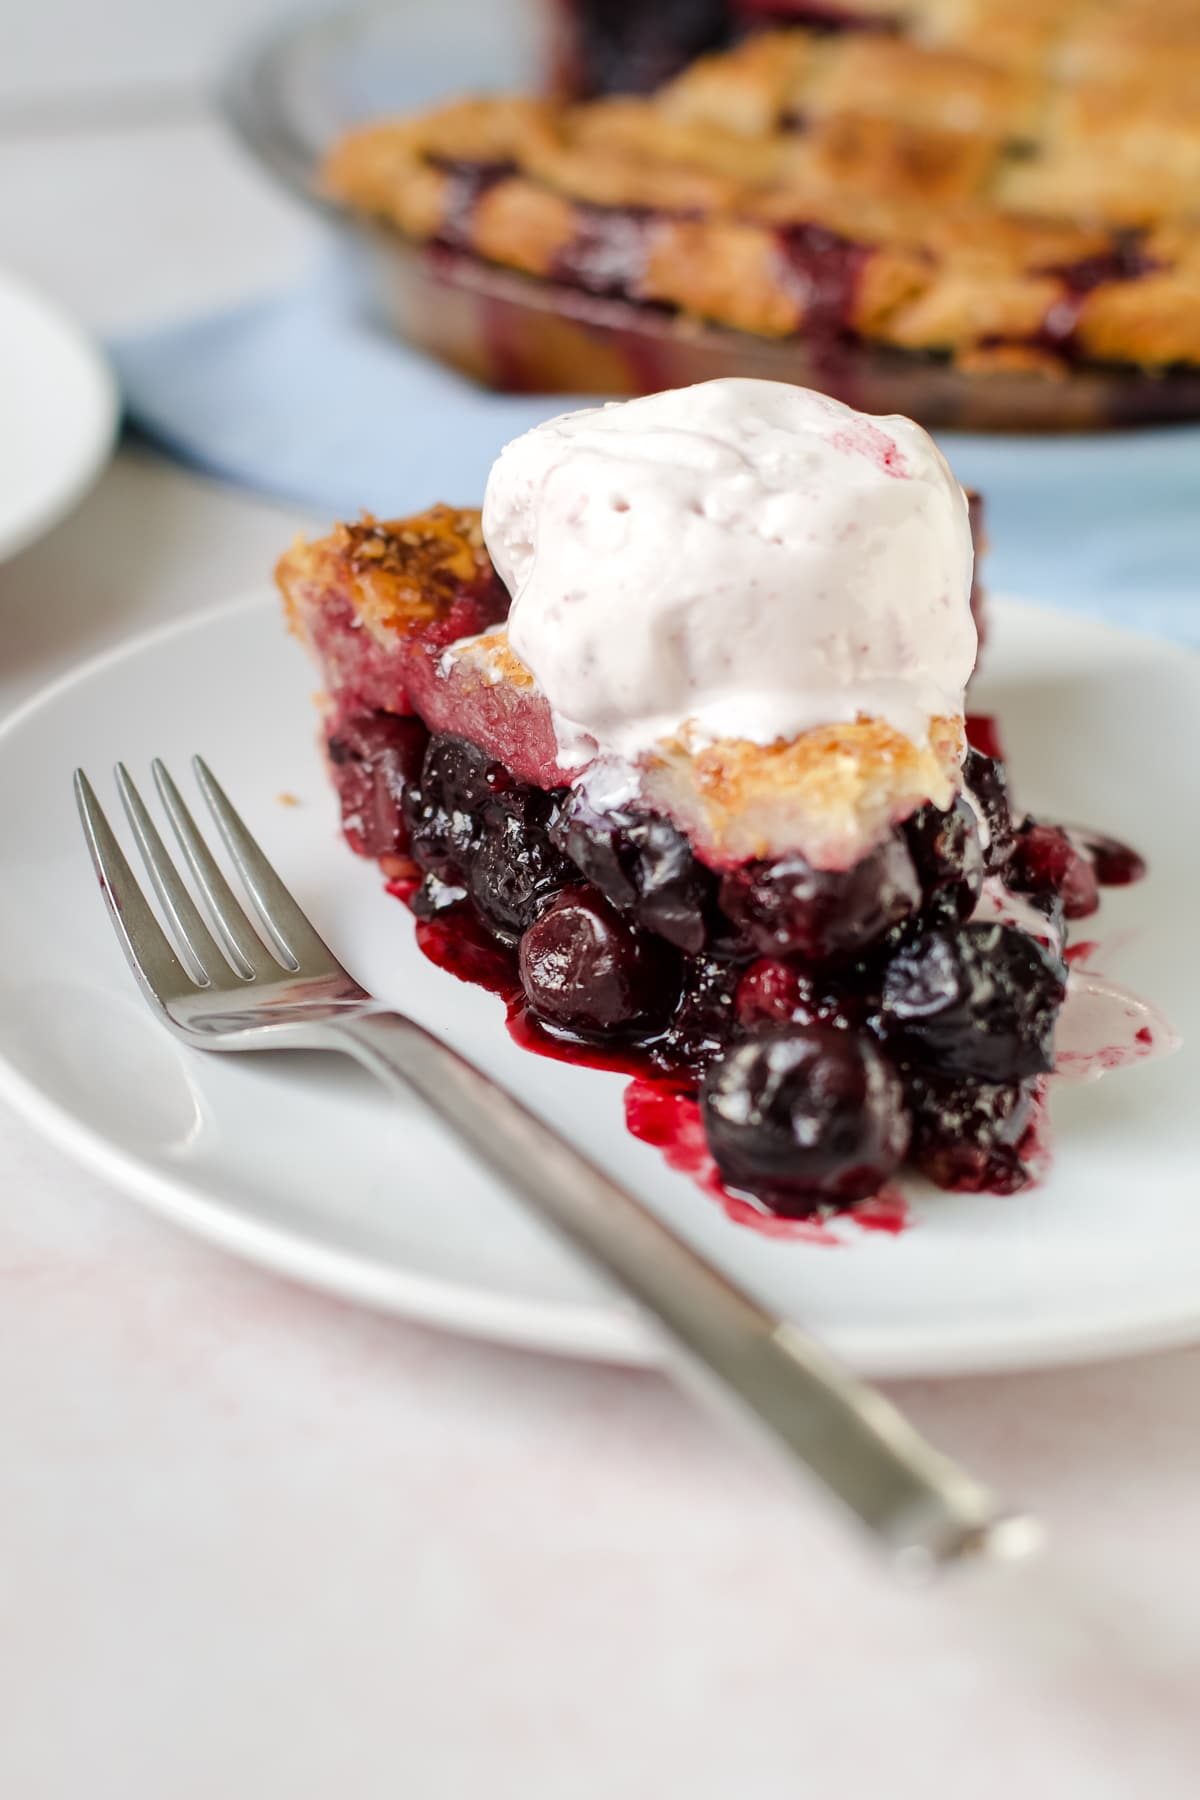 A juicy cherry pie with ice cream slightly melted on top of it.